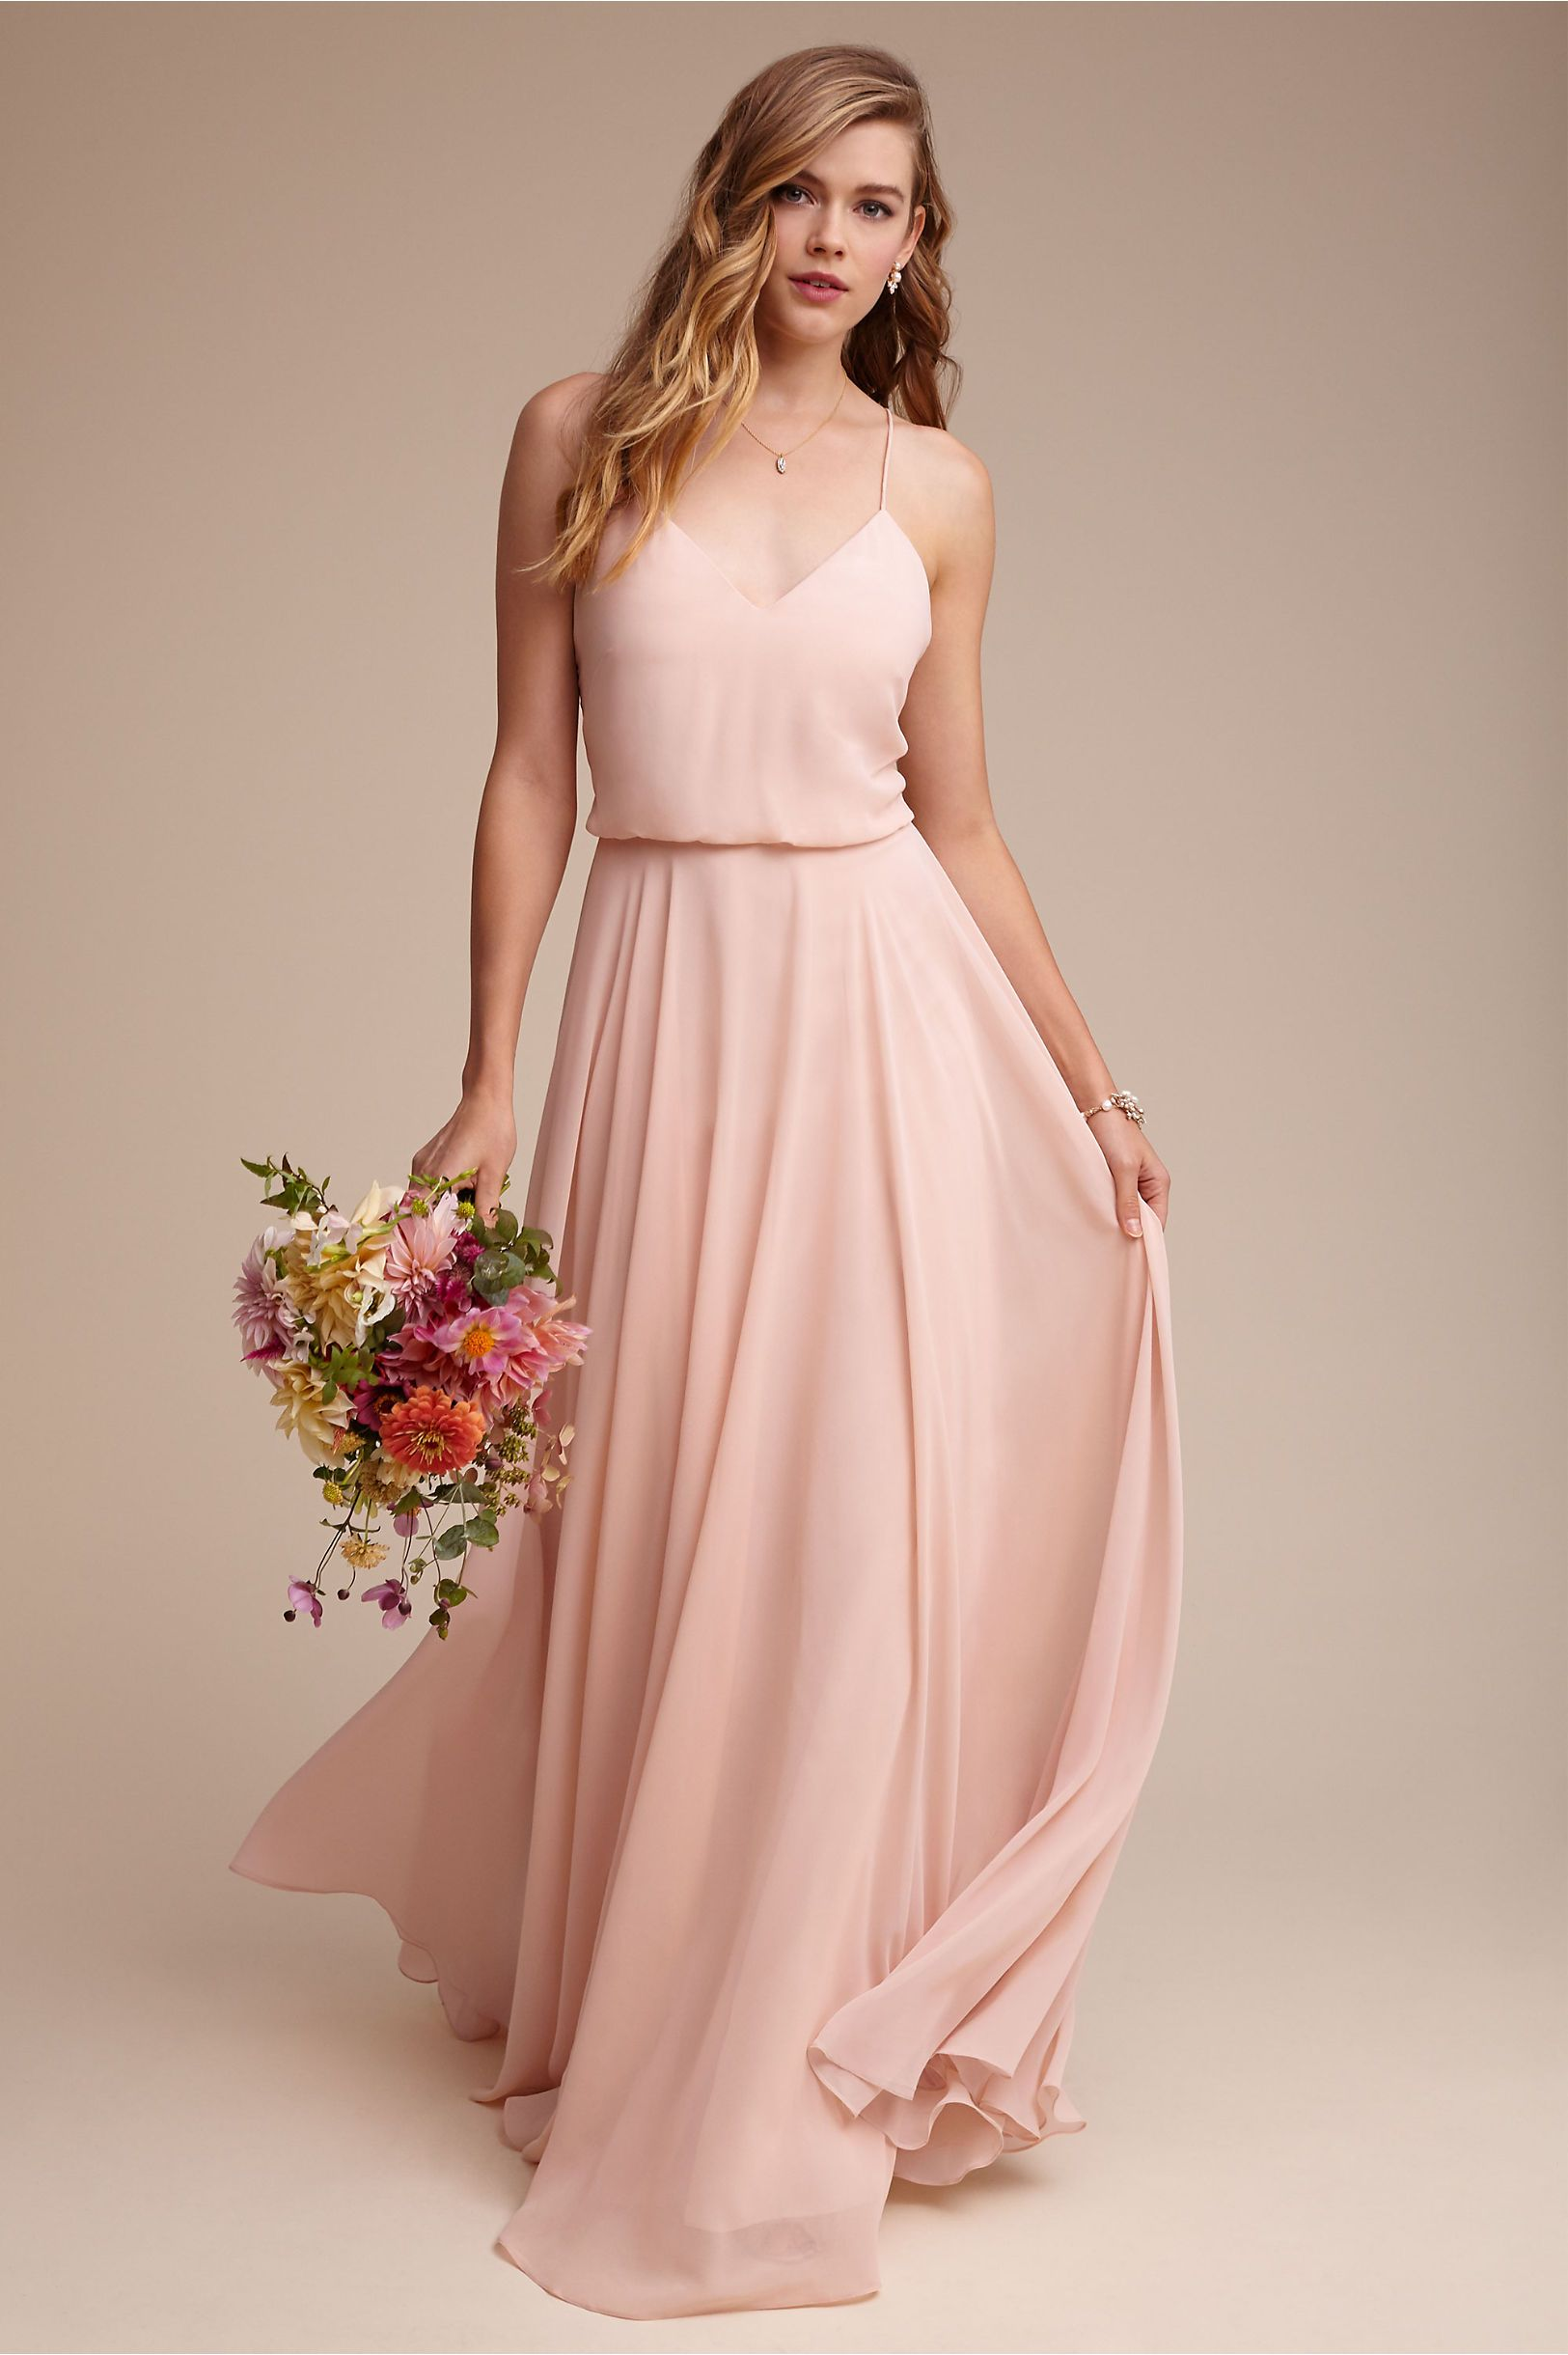 BHLDN\'s Jenny Yoo Inesse Dress in Blush | Vestidos de noche, Noche y ...